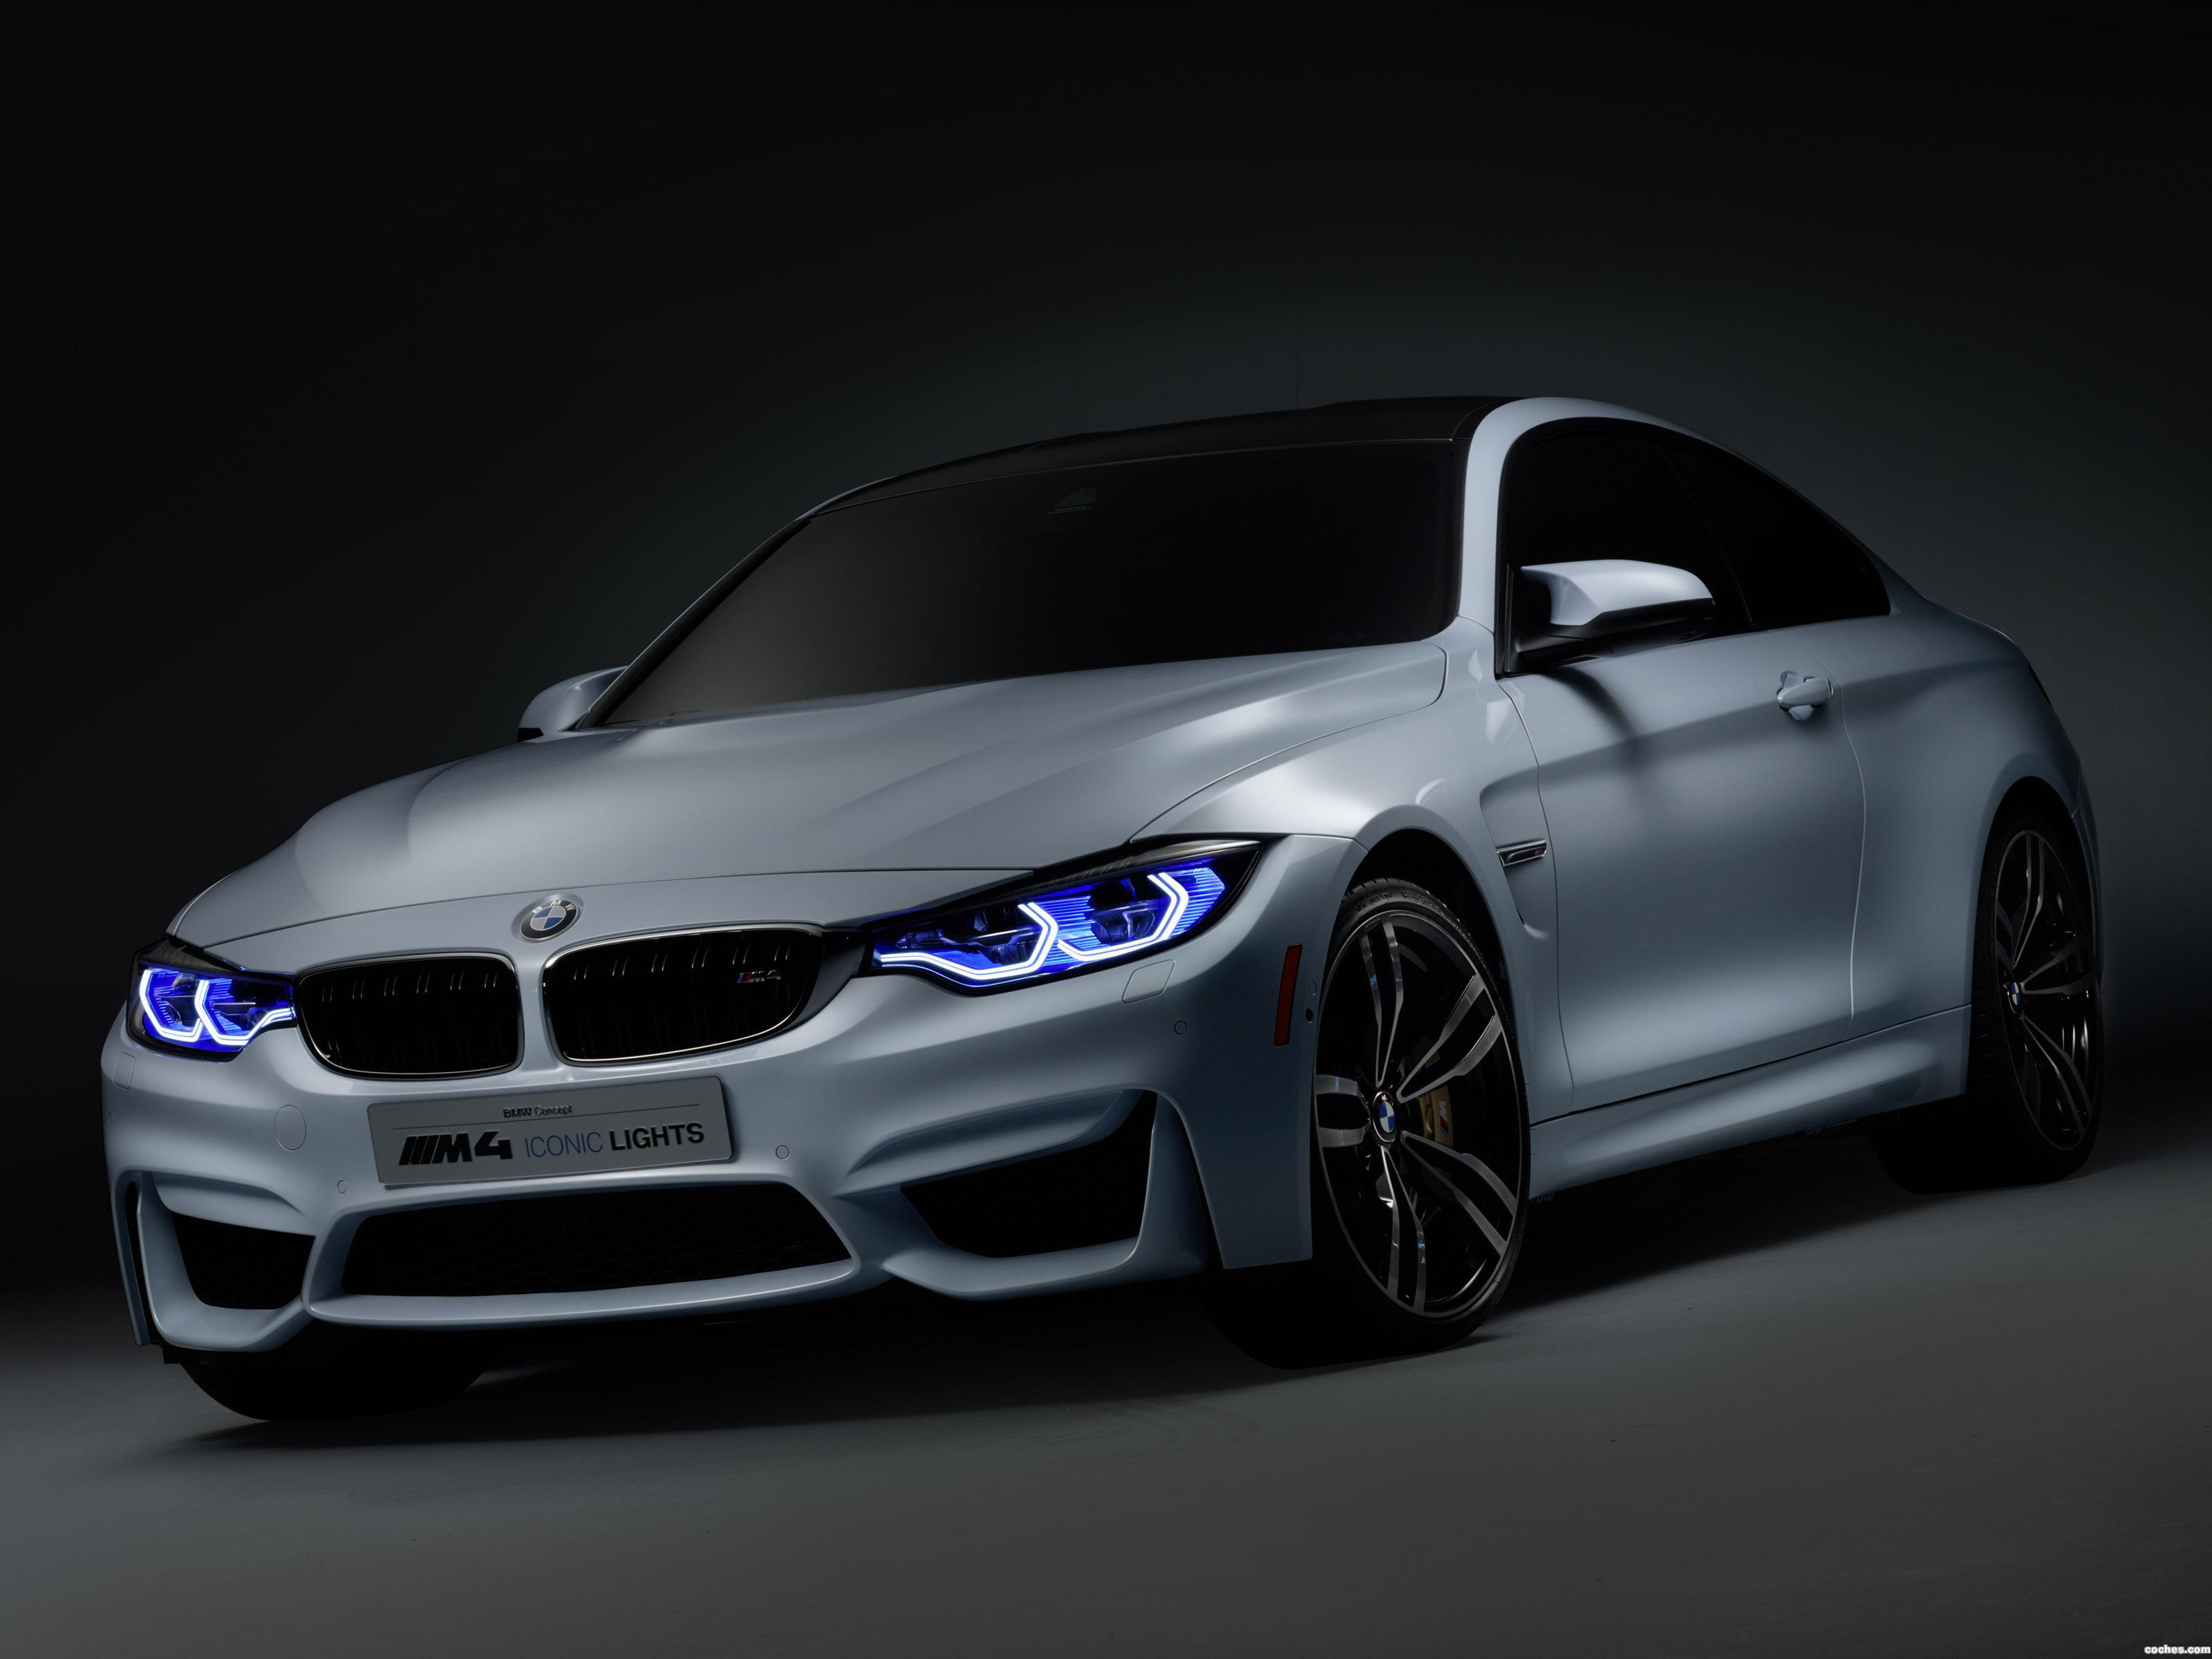 Foto 0 de BMW Serie 4 Concept M4 Iconic Lights F82 2015